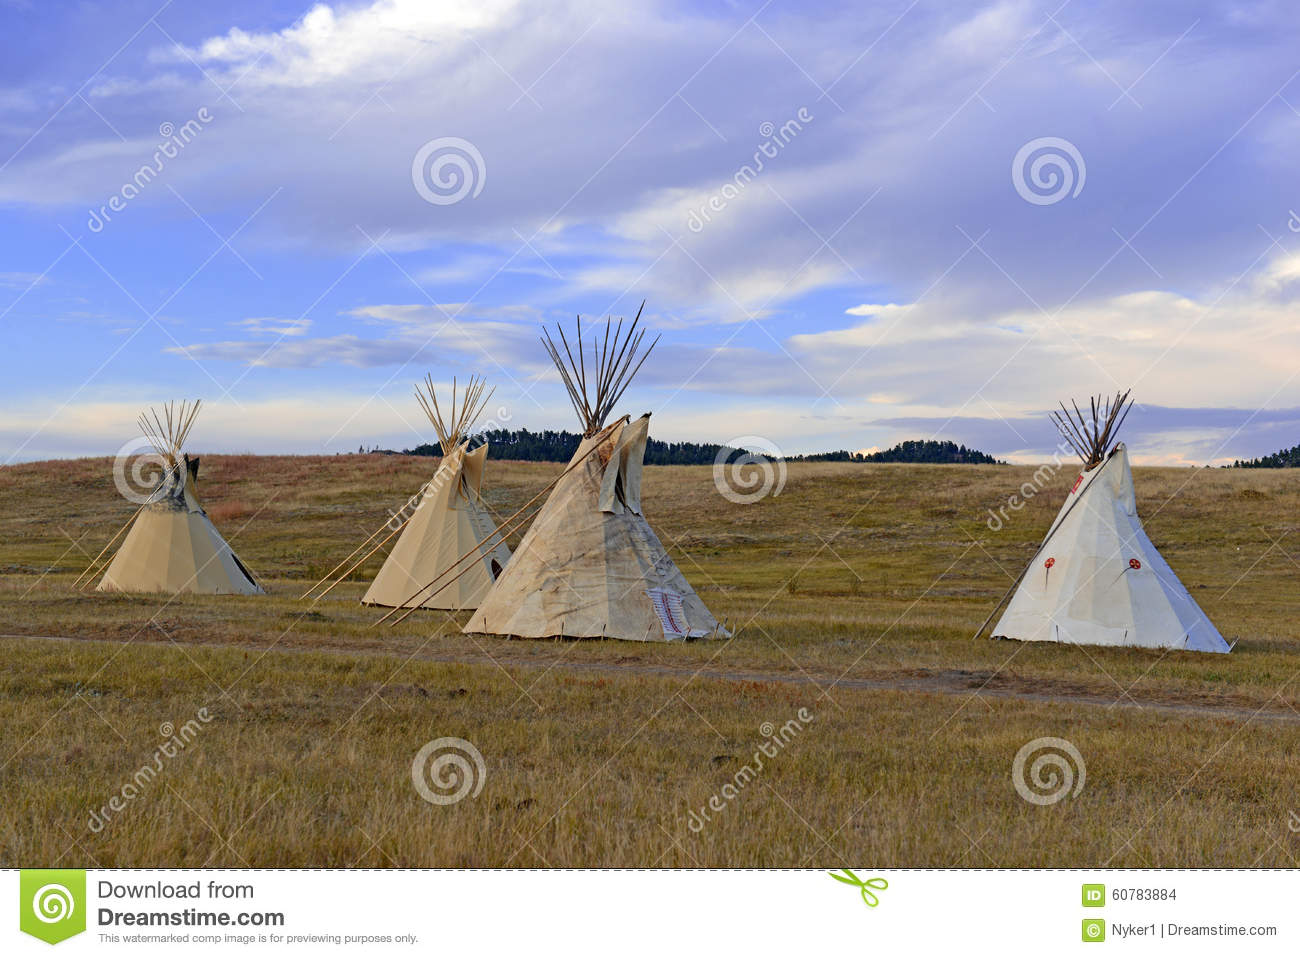 Teepee Tipi As Used By Native Americans In The Great